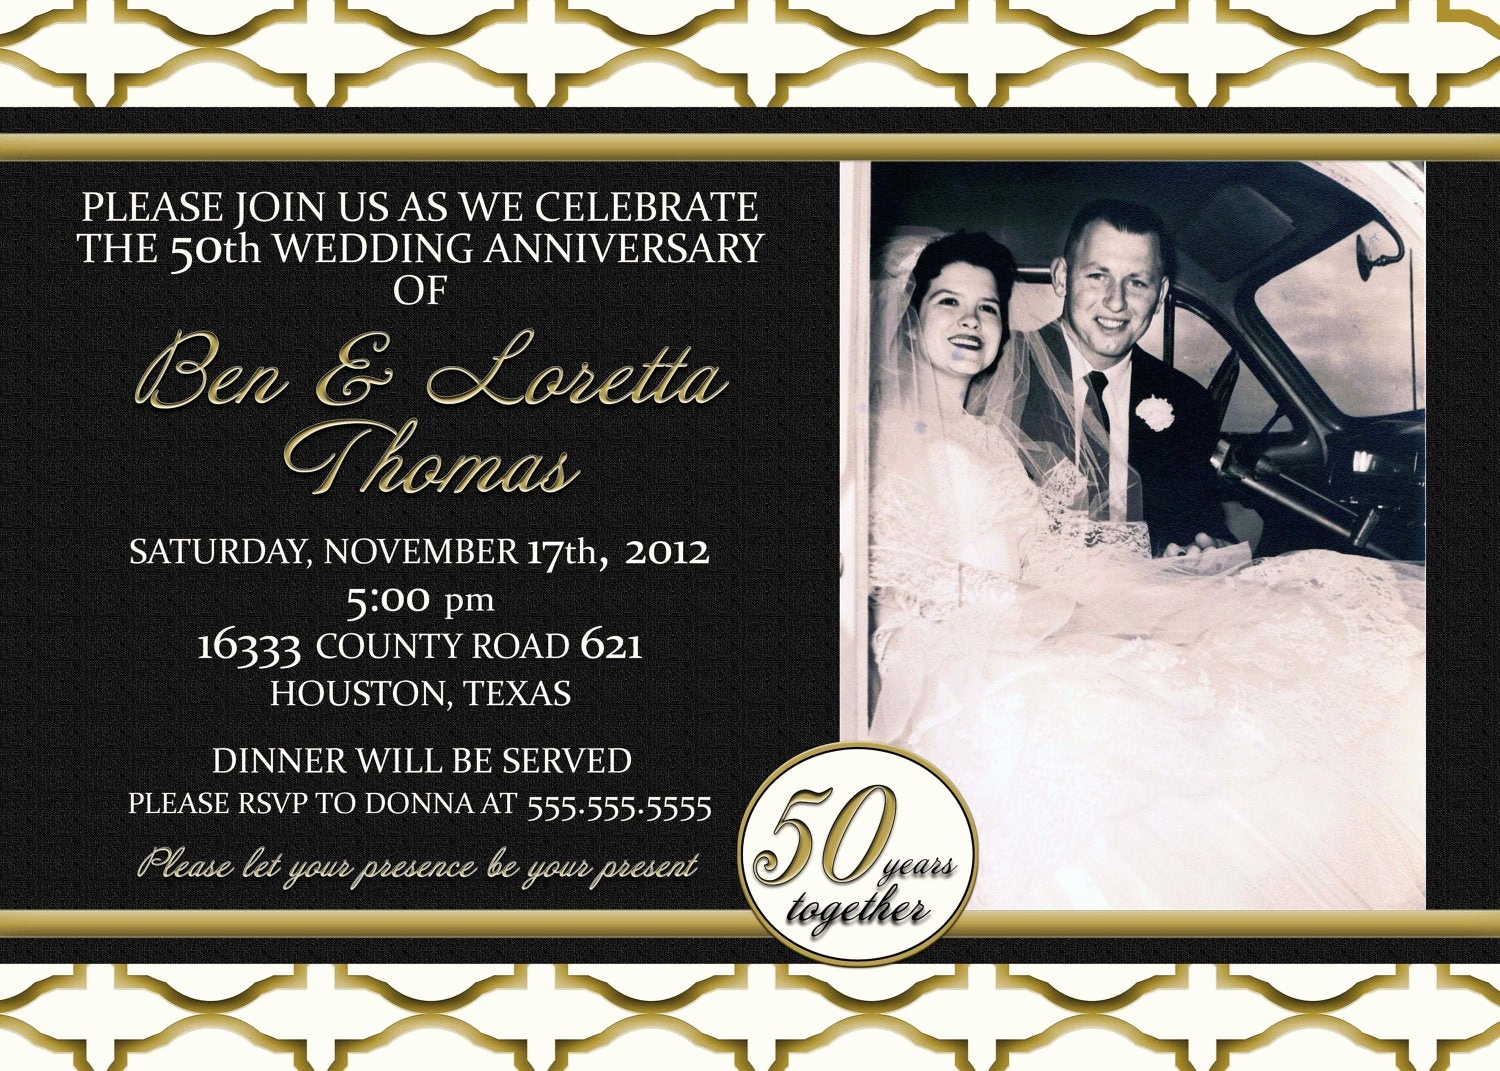 50th Anniversary Invitation Ideas Lovely Custom Gold Black and Ivory 50th Anniversary Invitation